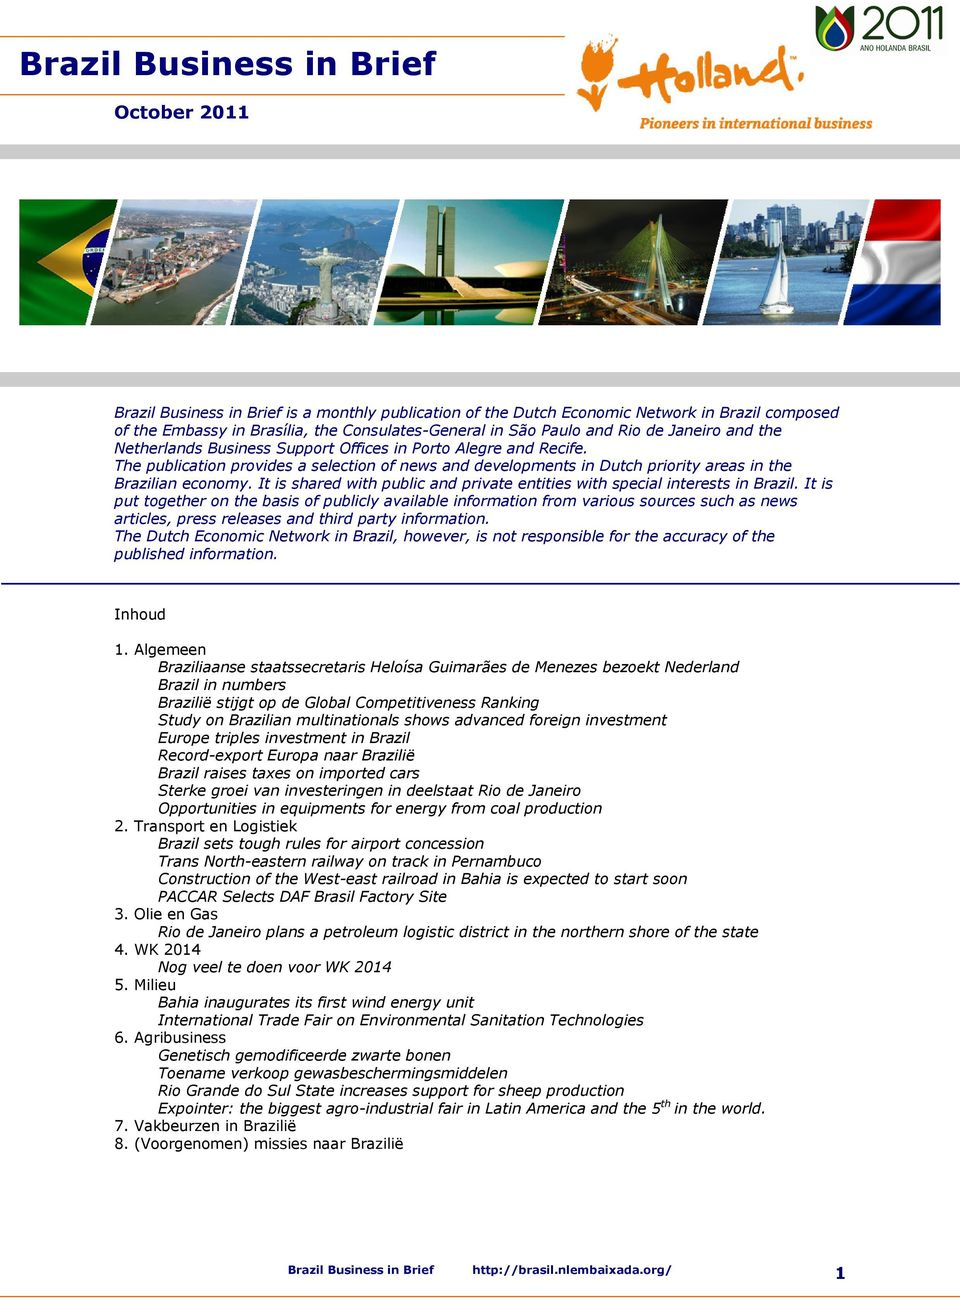 The publication provides a selection of news and developments in Dutch priority areas in the Brazilian economy. It is shared with public and private entities with special interests in Brazil.